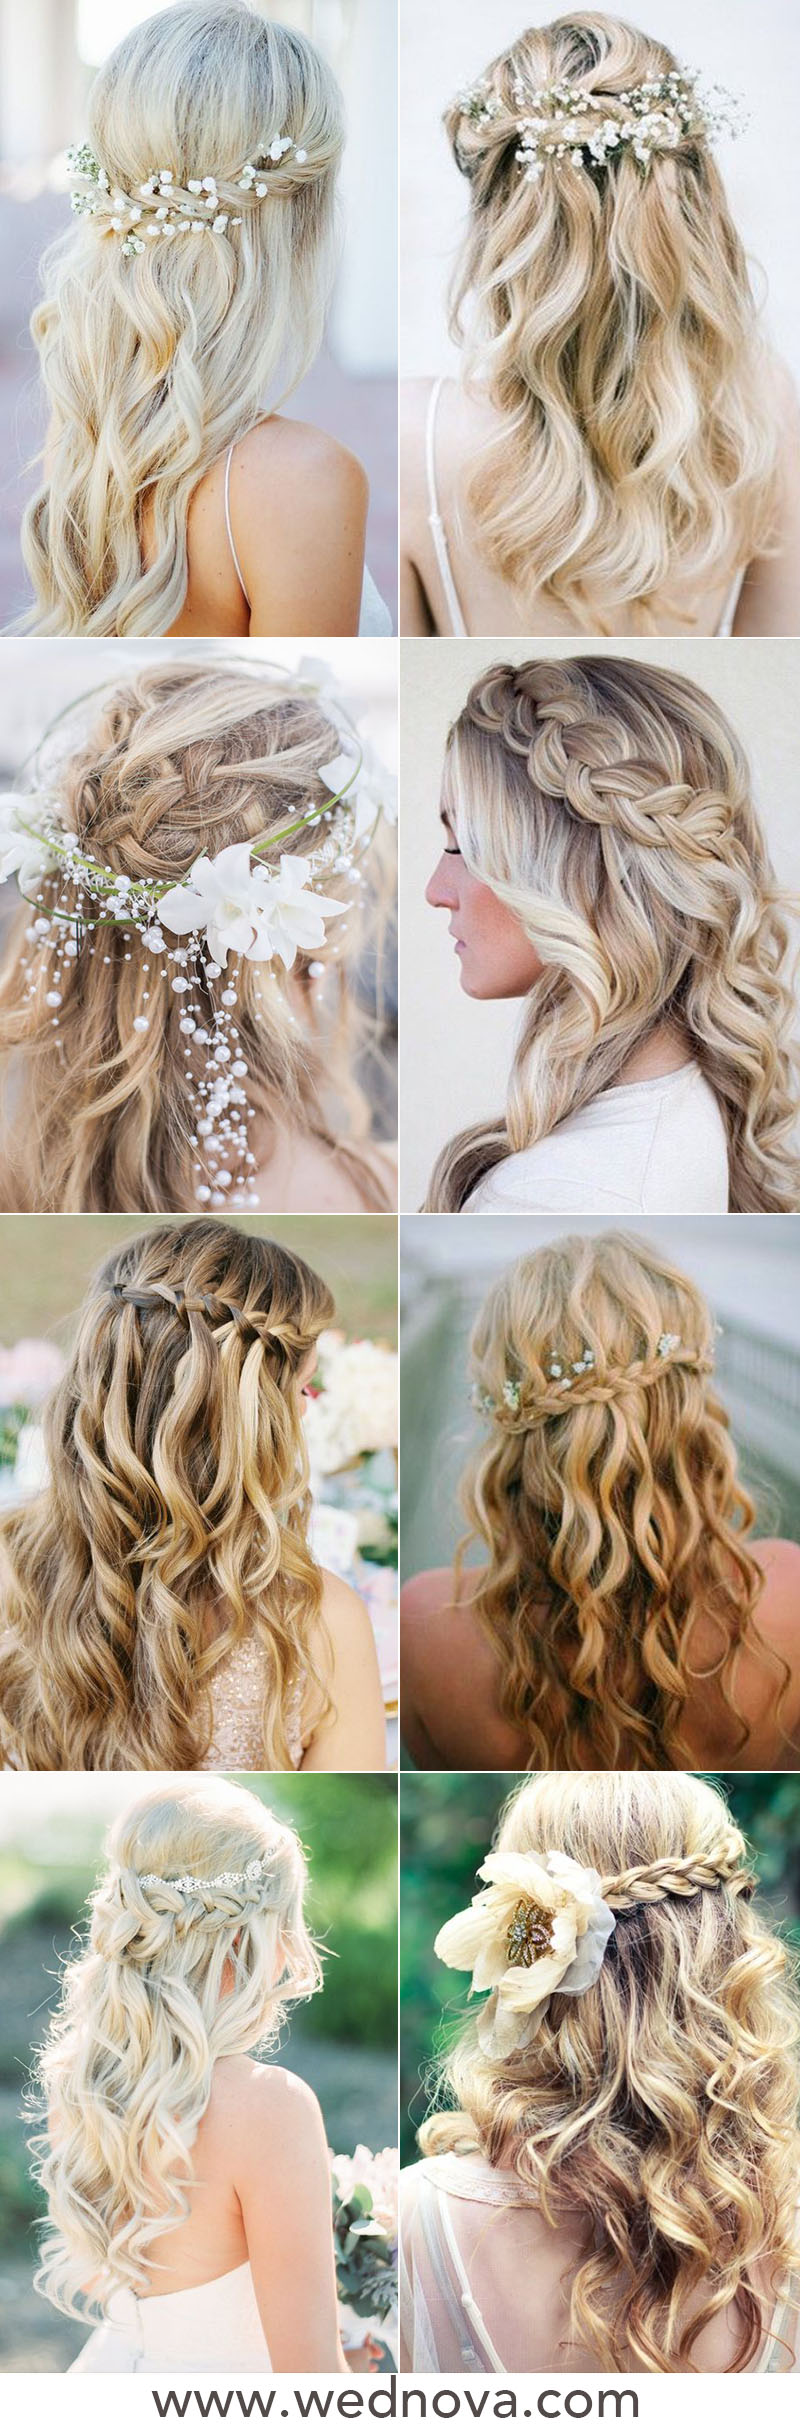 48 Easy Wedding Hairstyles Best Guide for Your Bridesmaids ...